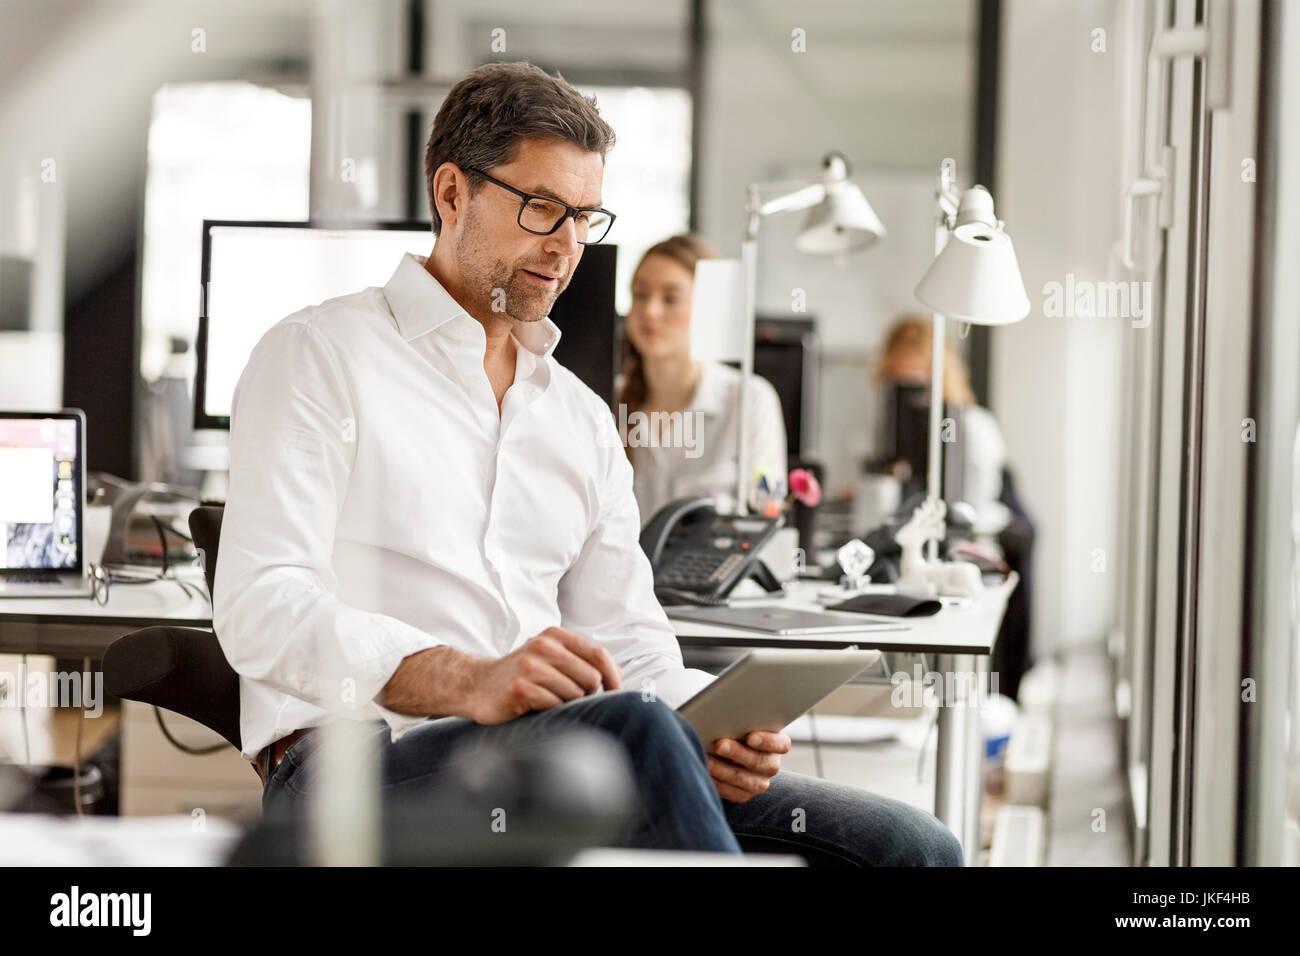 Businessman at desk in office using tablet - Stock Image